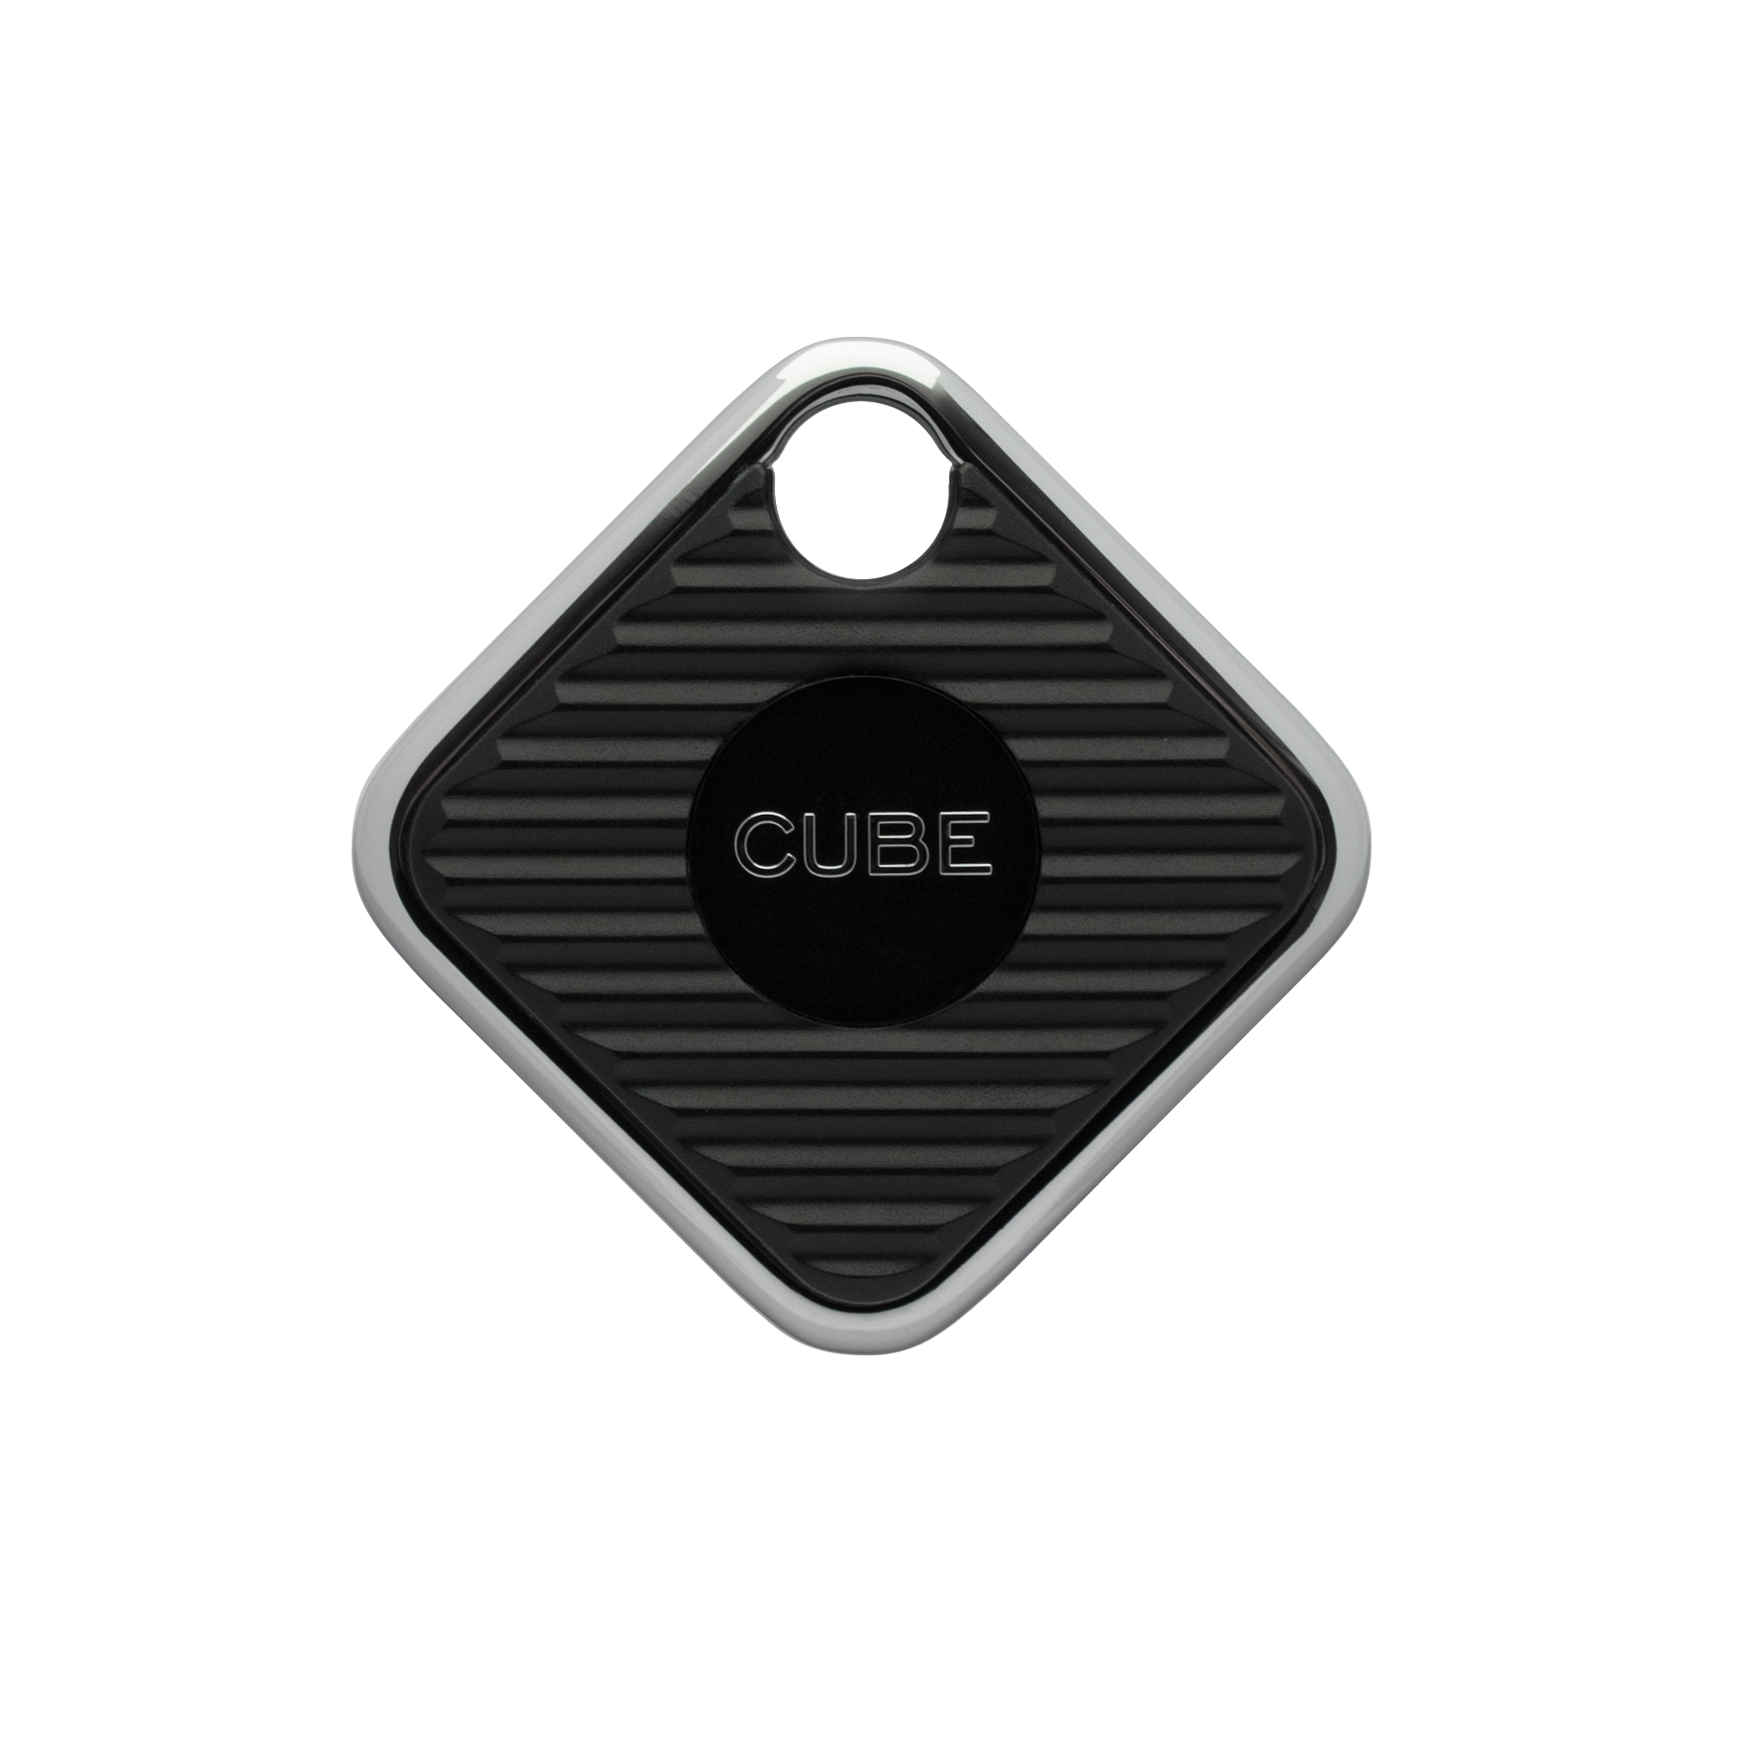 Cube Pro - Cube Pro boasts a sleek new metal design as well as extended range and volume.